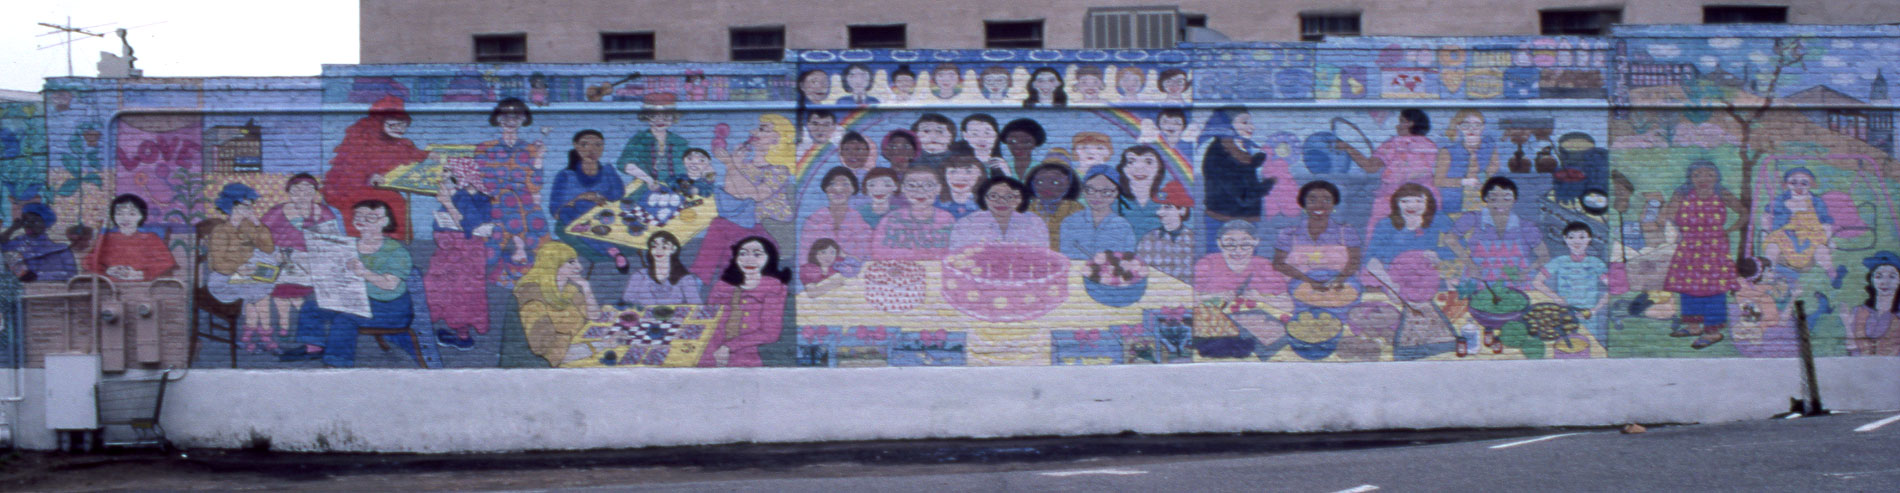 12 by 80 foot mural at the Downtown Women's Center, by Ann Wolken